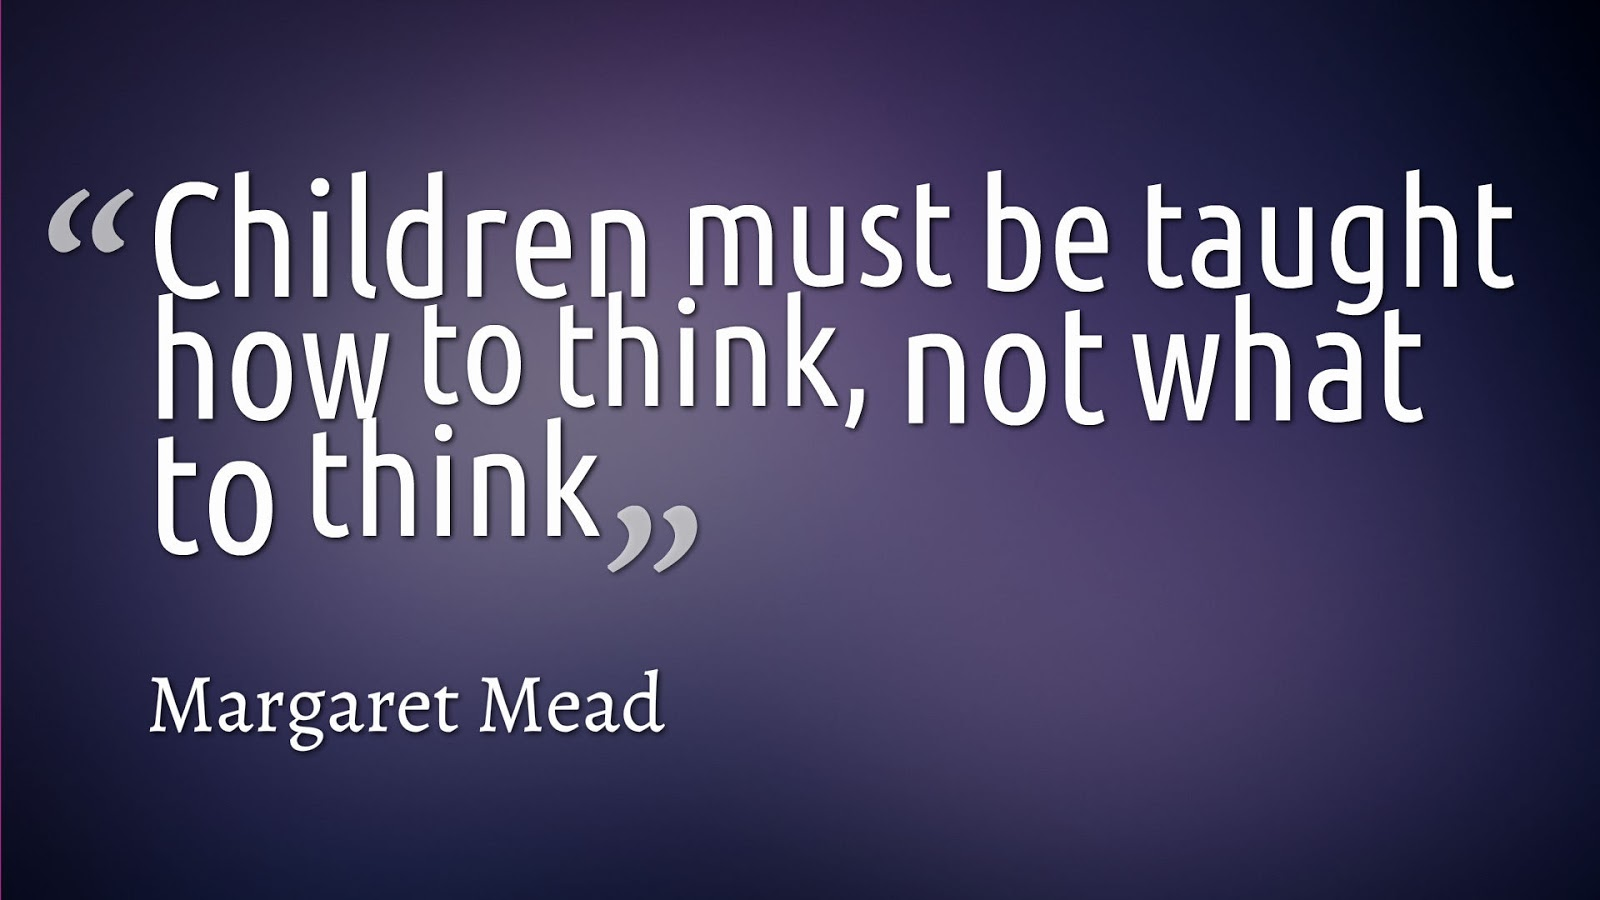 Quotes Education Education Sayings And Quotes  Best Quotes And Sayings